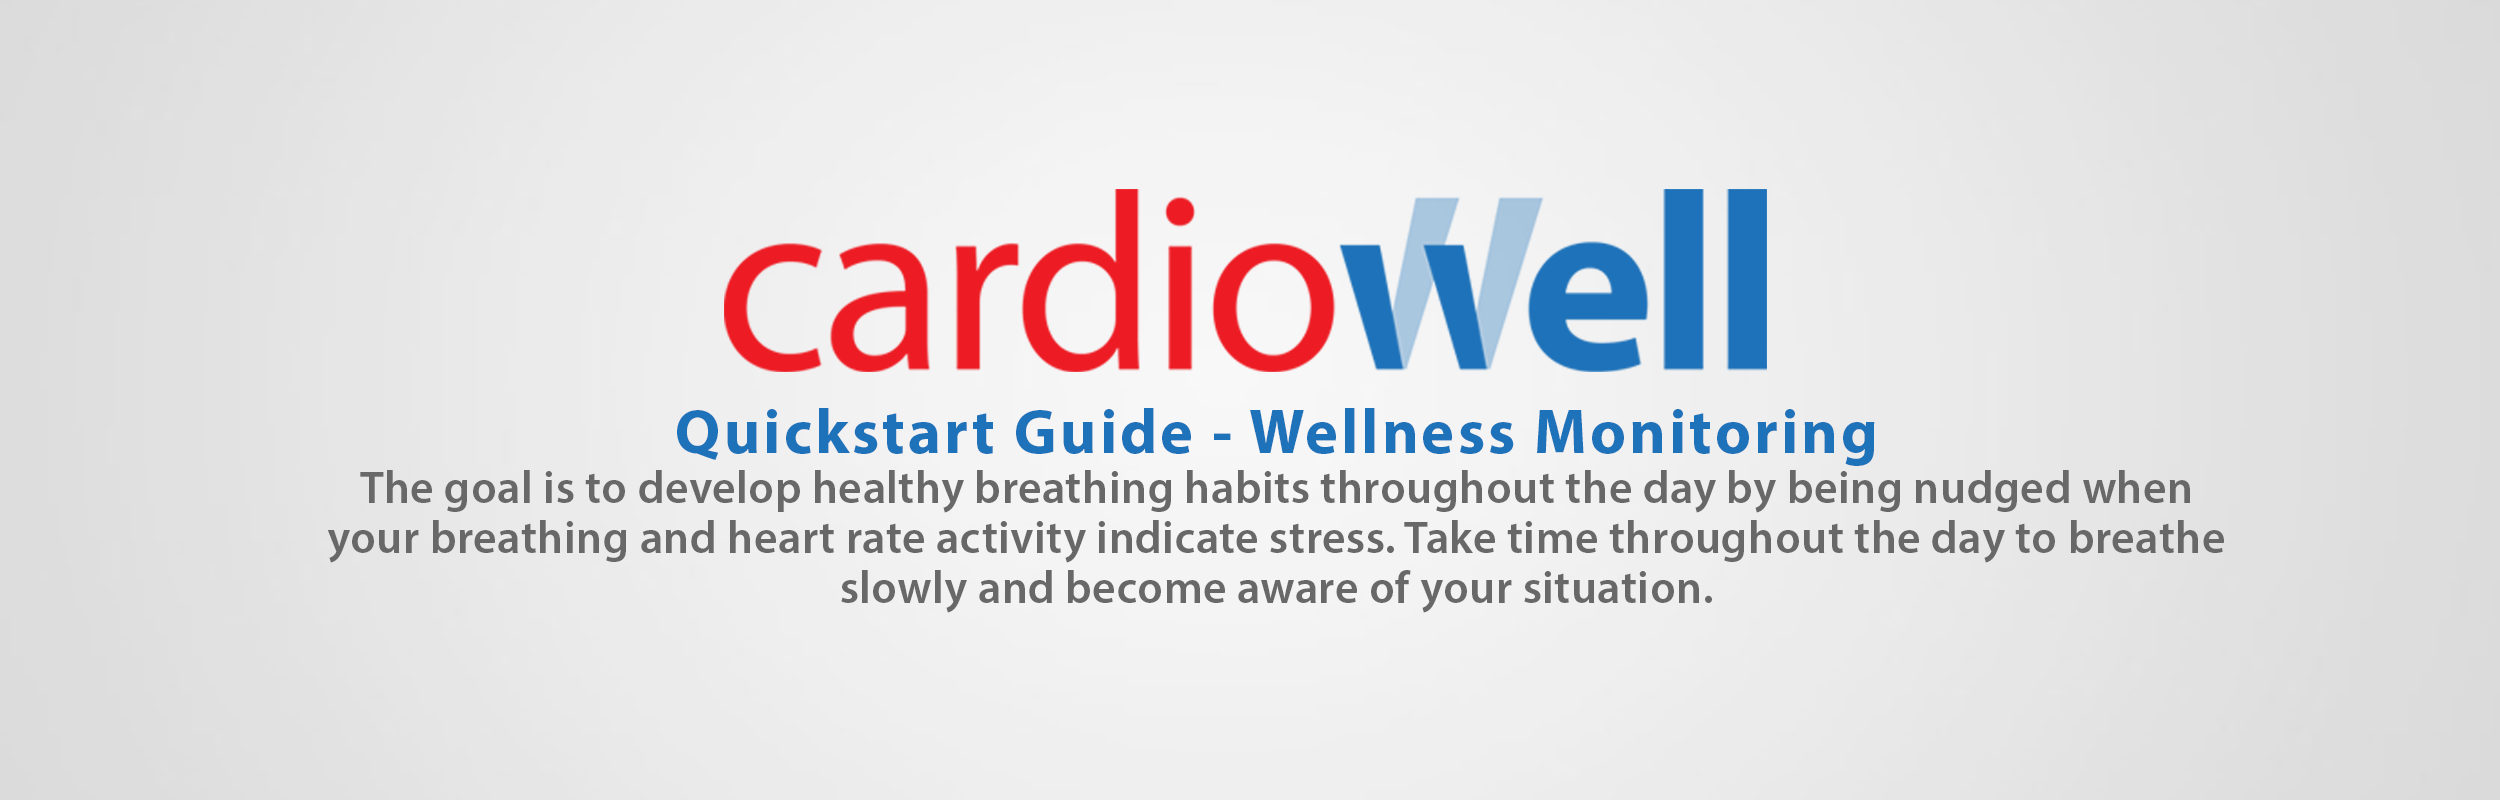 cardiowell+intro.png